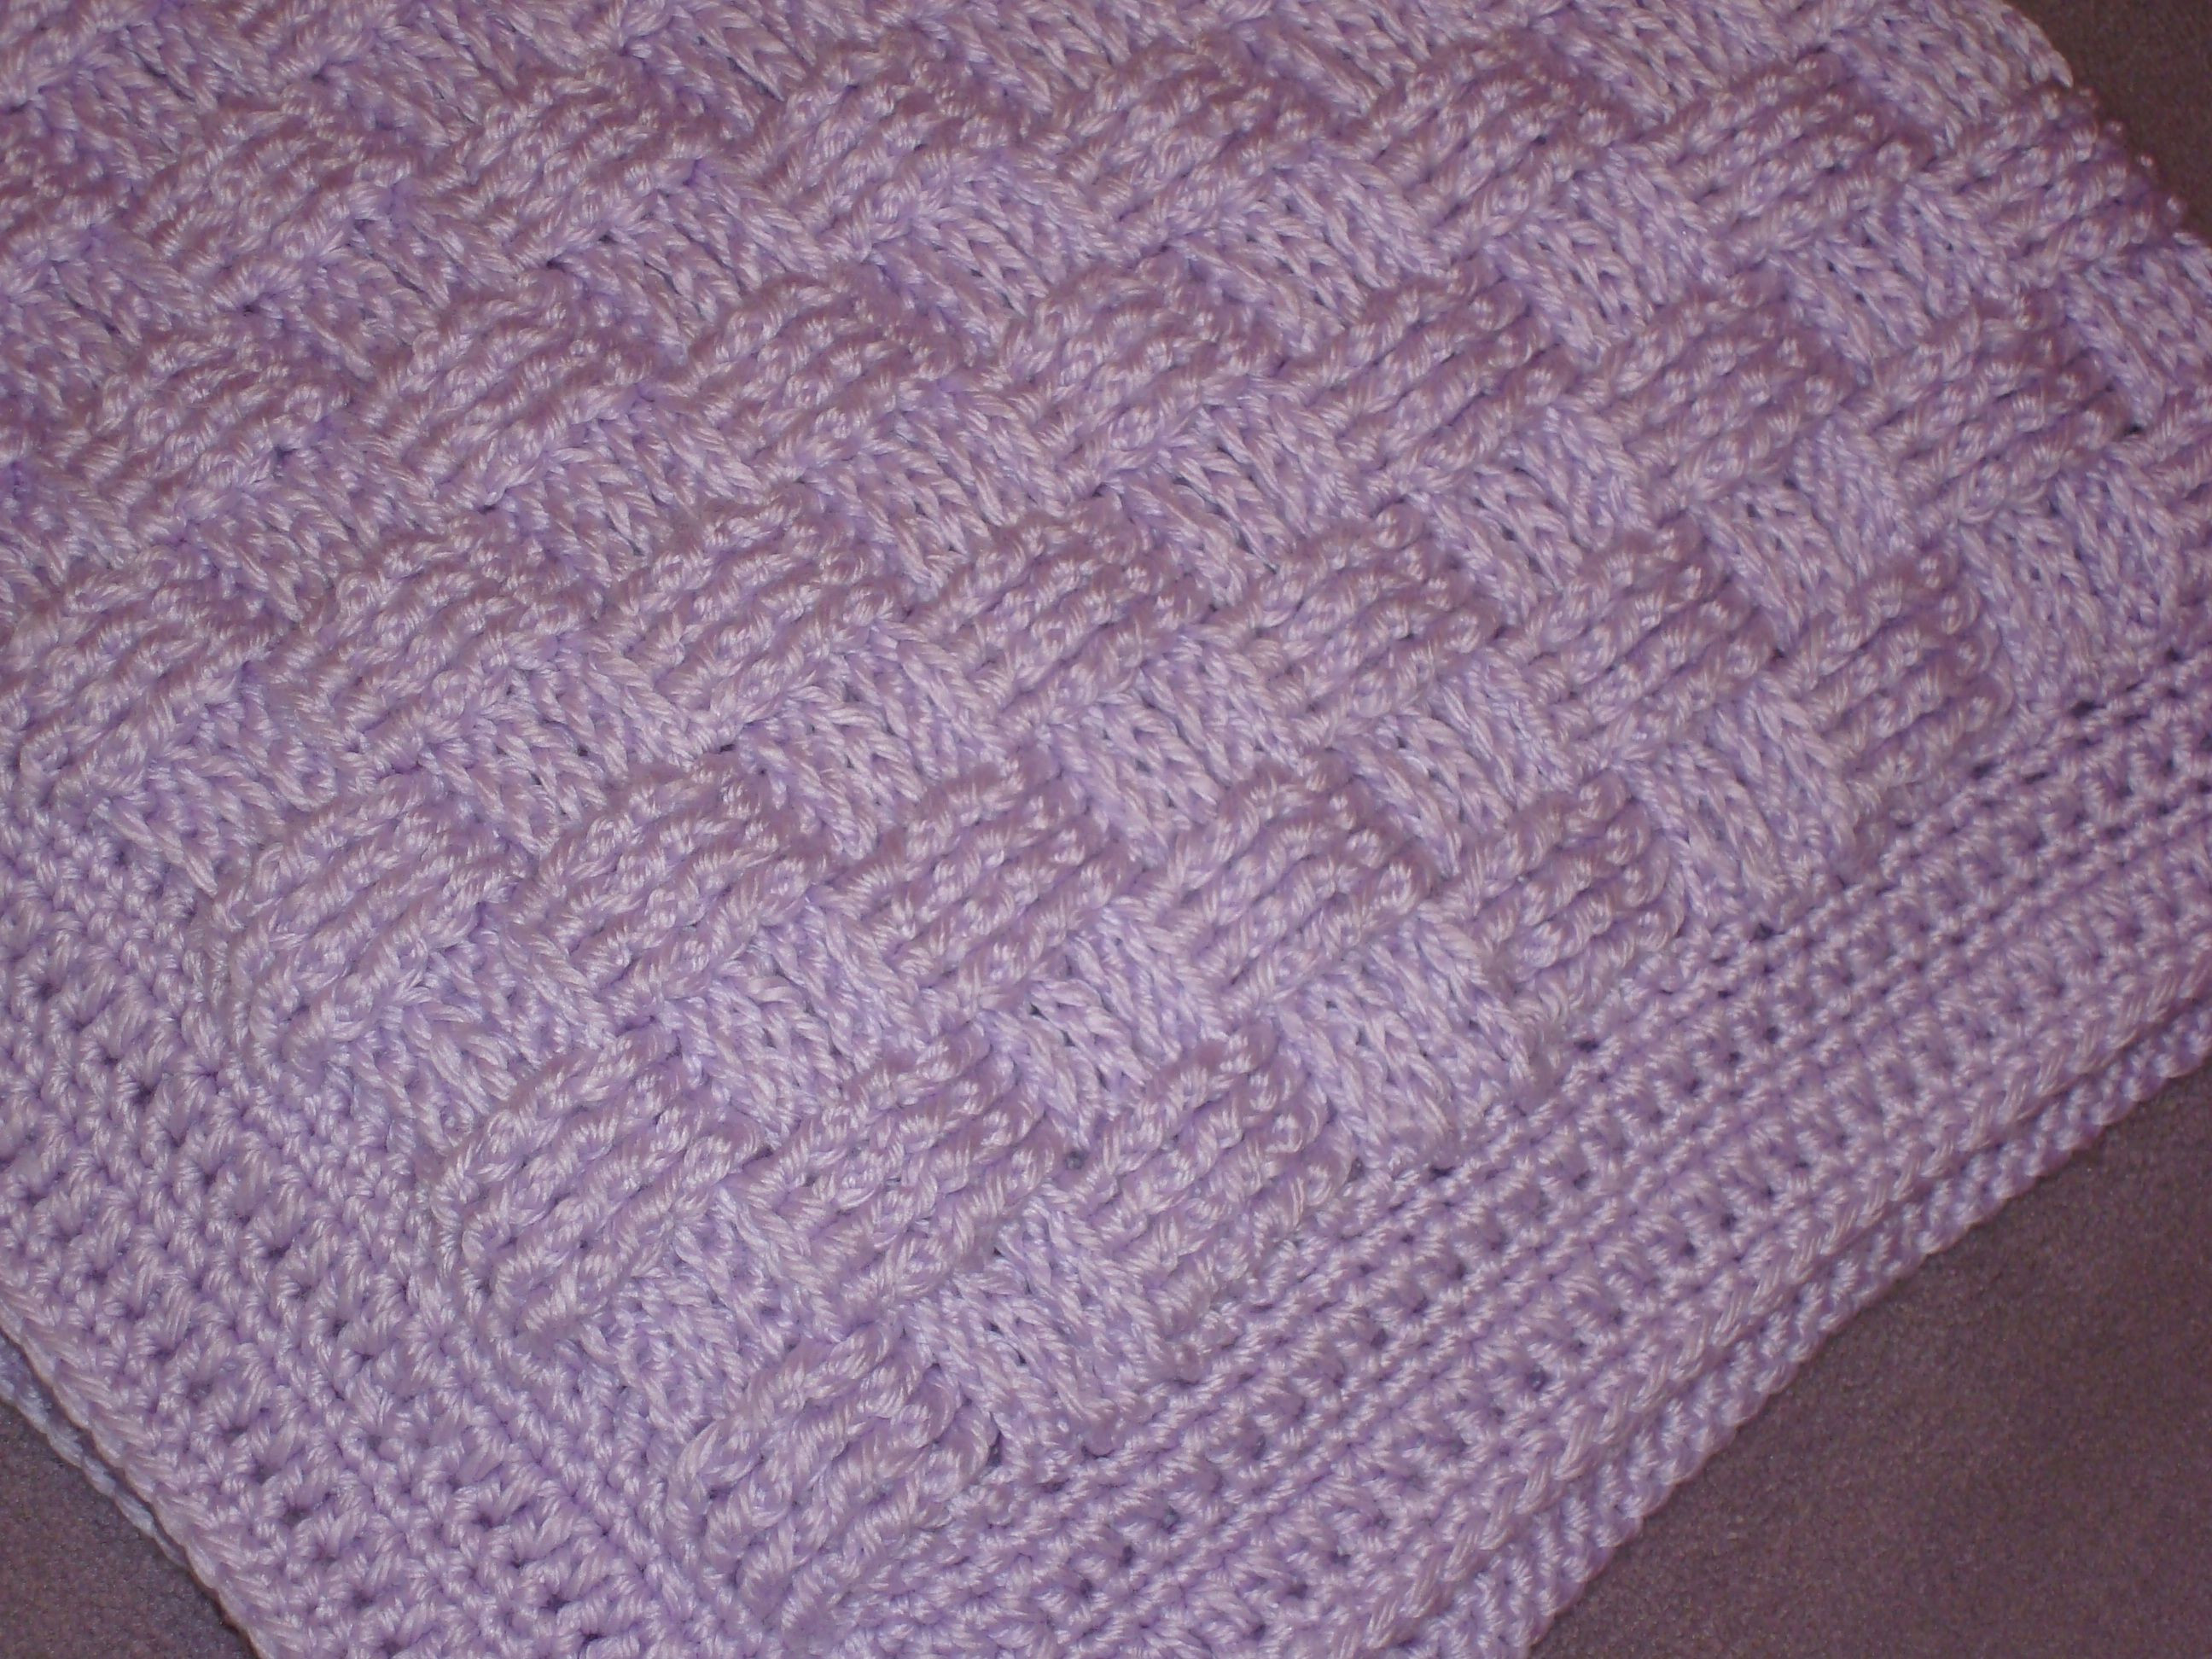 Cousin Crystal s Crocheted Basket Weave Baby Blanket